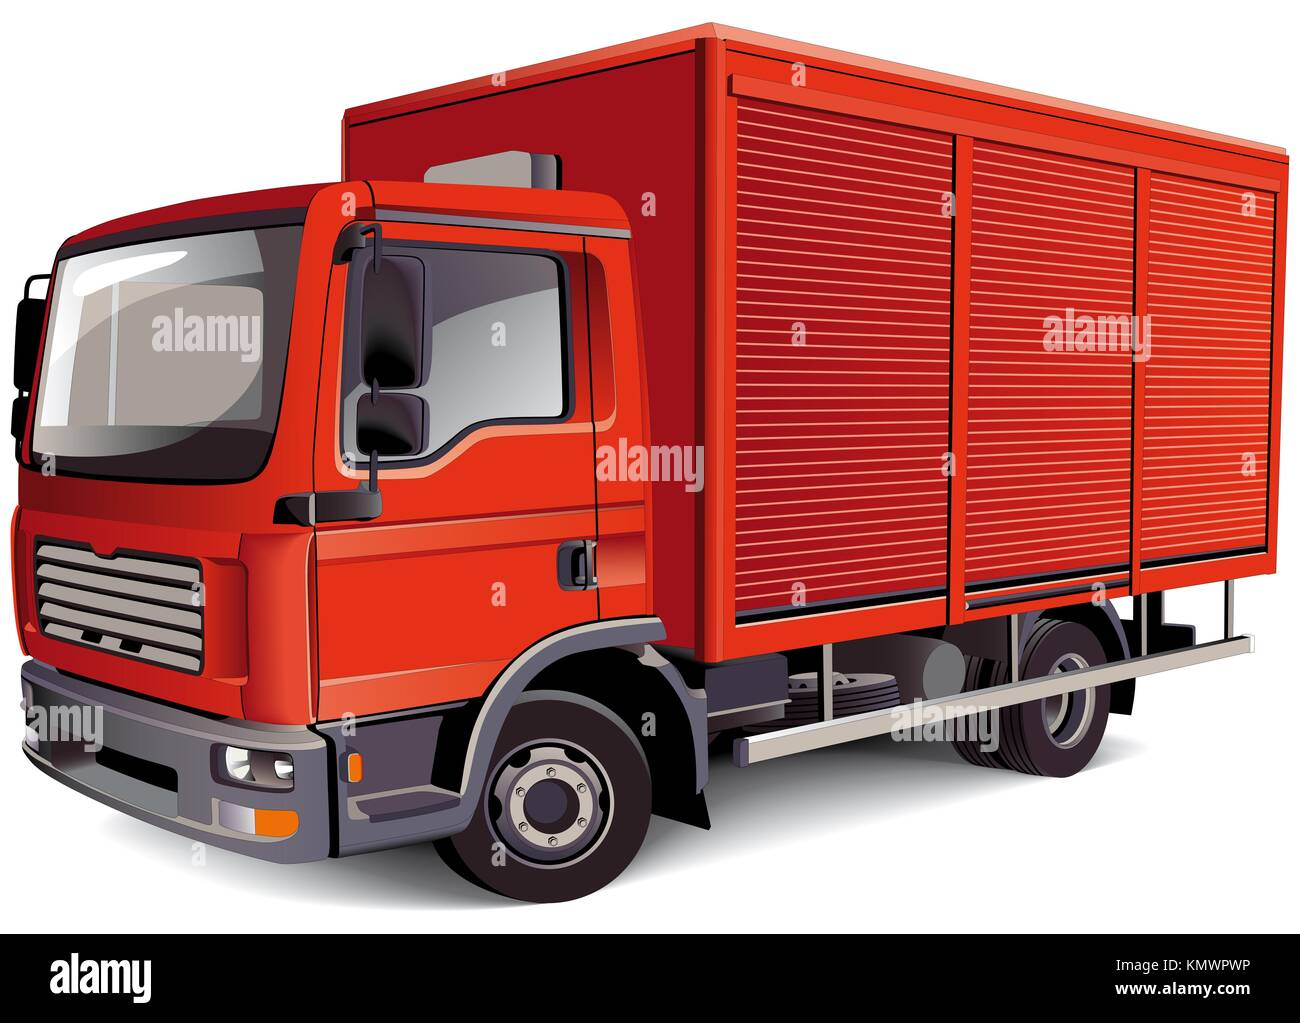 Detailed vectorial image of red van, isolated on white background  Contains gradients and blends Stock Photo